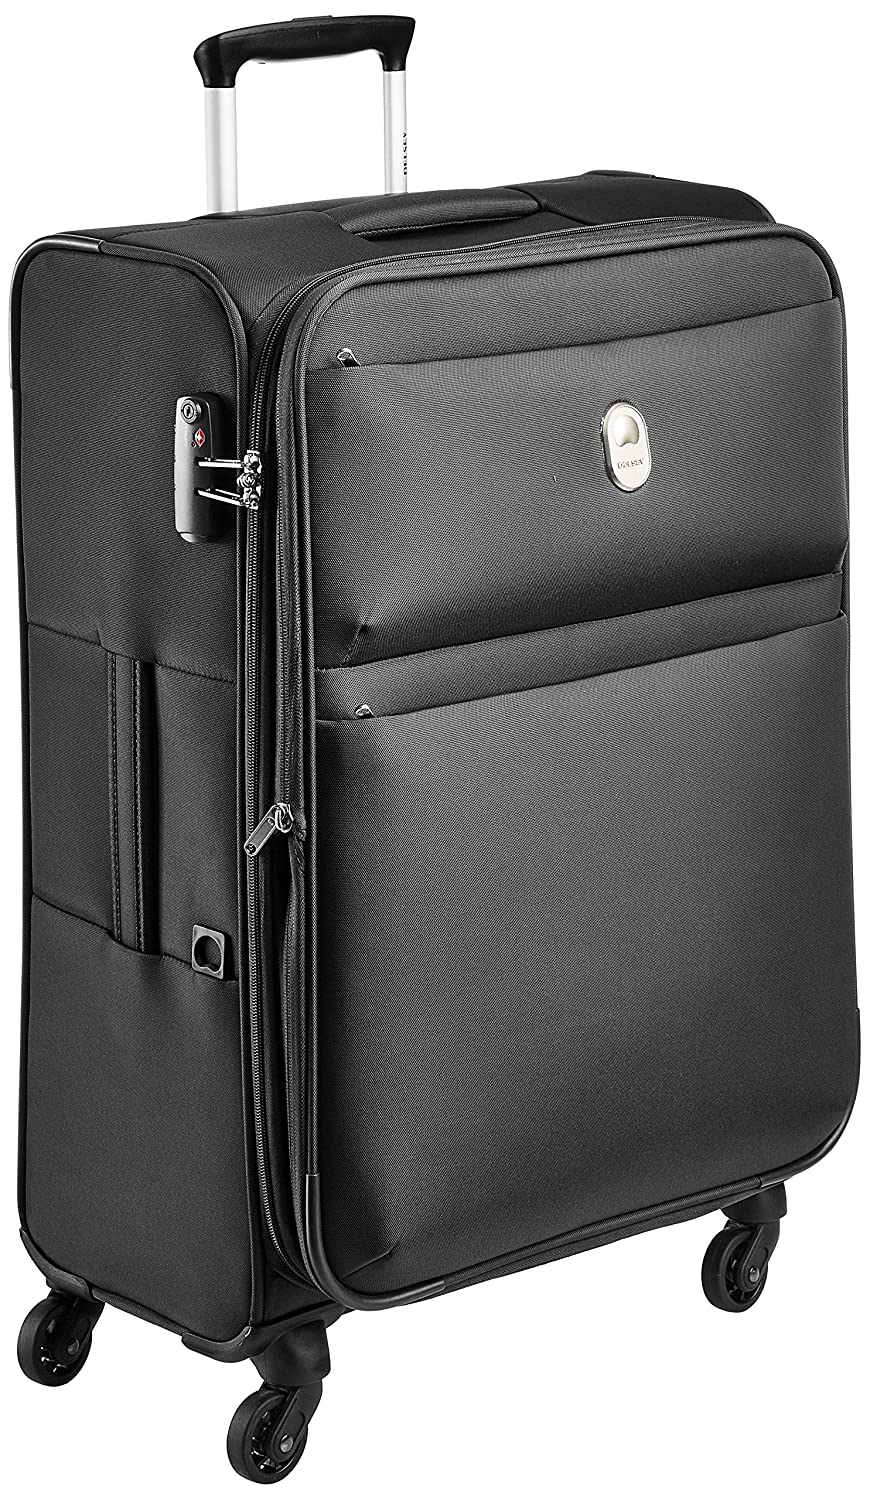 Delsey Joras Polyester 78 cms Black Soft Sided Suitcase